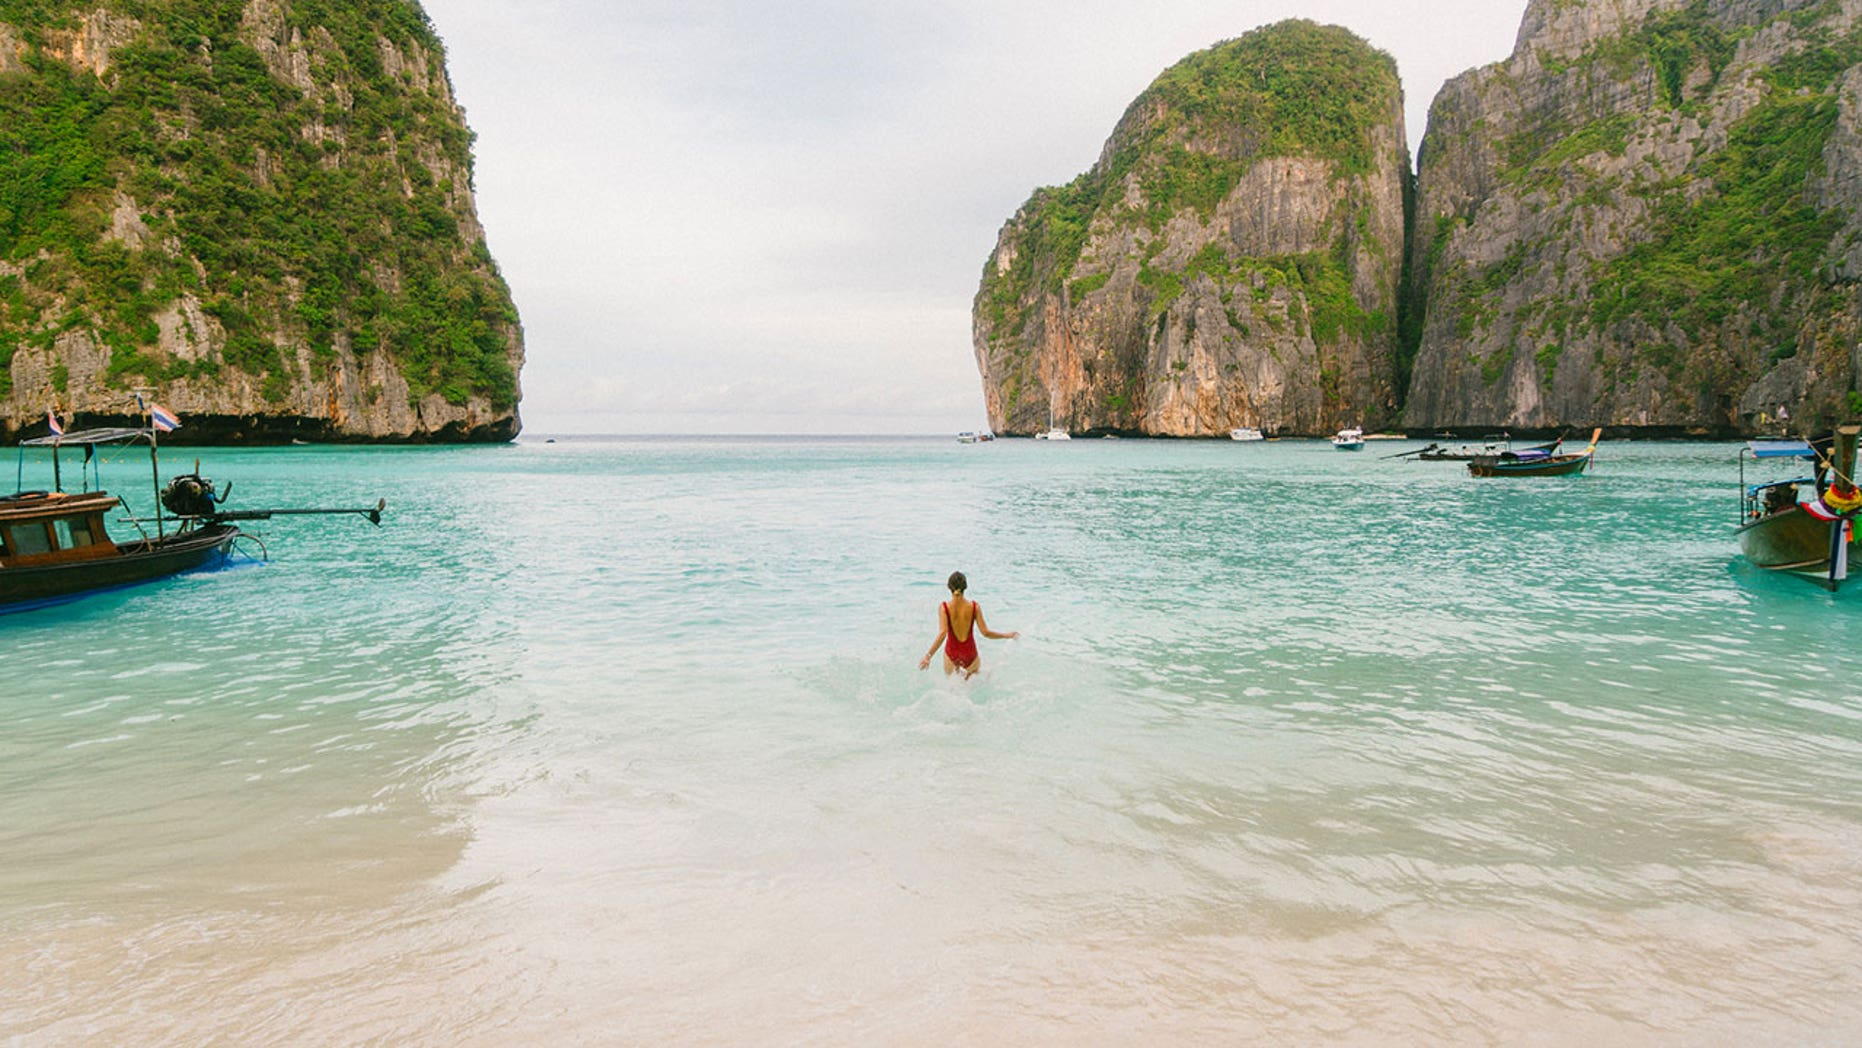 """The Phi Phi islands have been popular with tourists since they were featured in Danny Boyle's 2000 film """"The Beach,"""" but authorities say visitors are contributing to the damage of the coral reefs."""